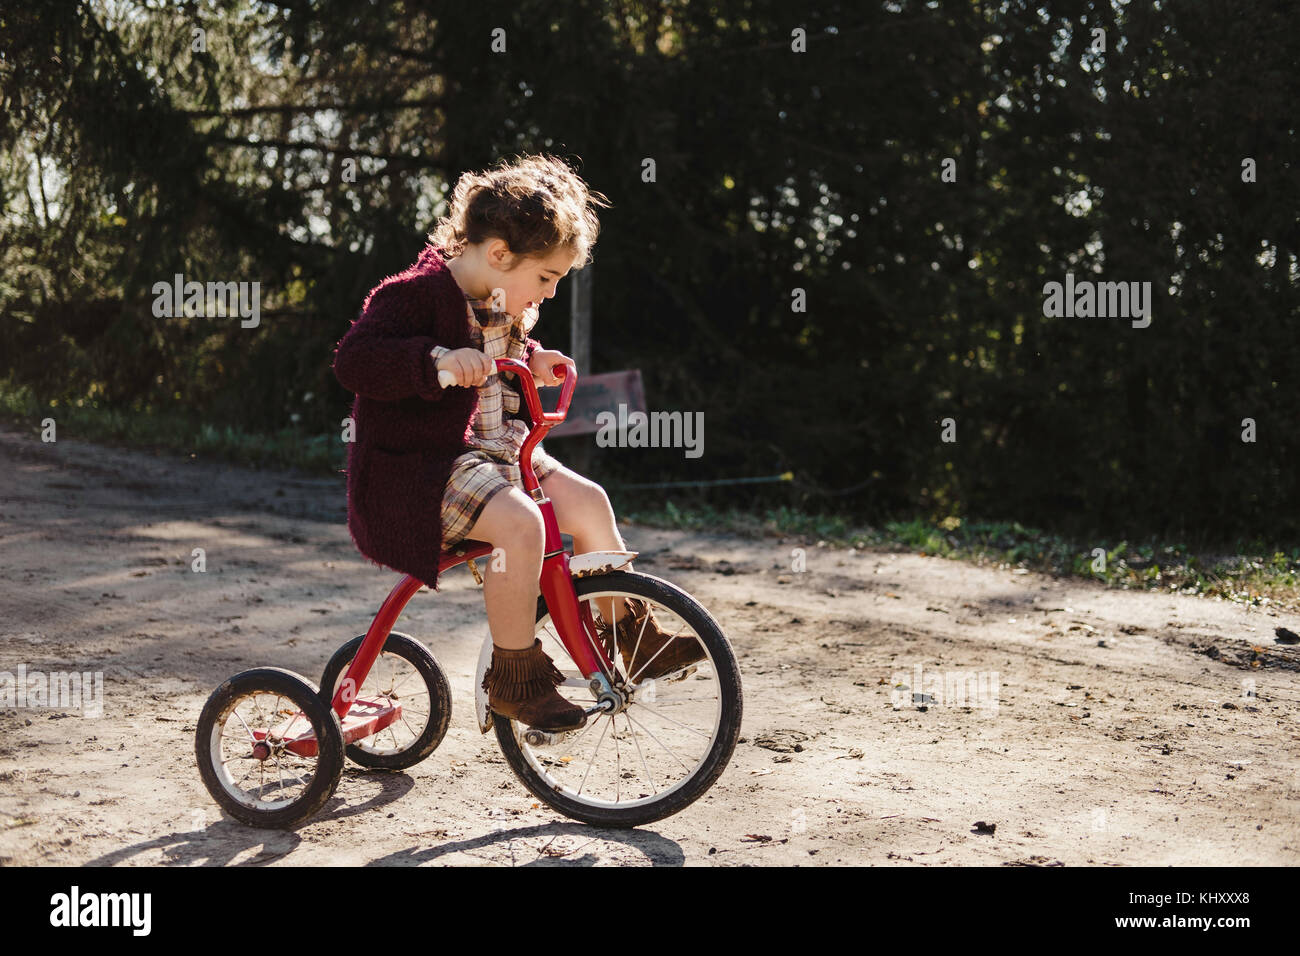 Girl on tricycle - Stock Image